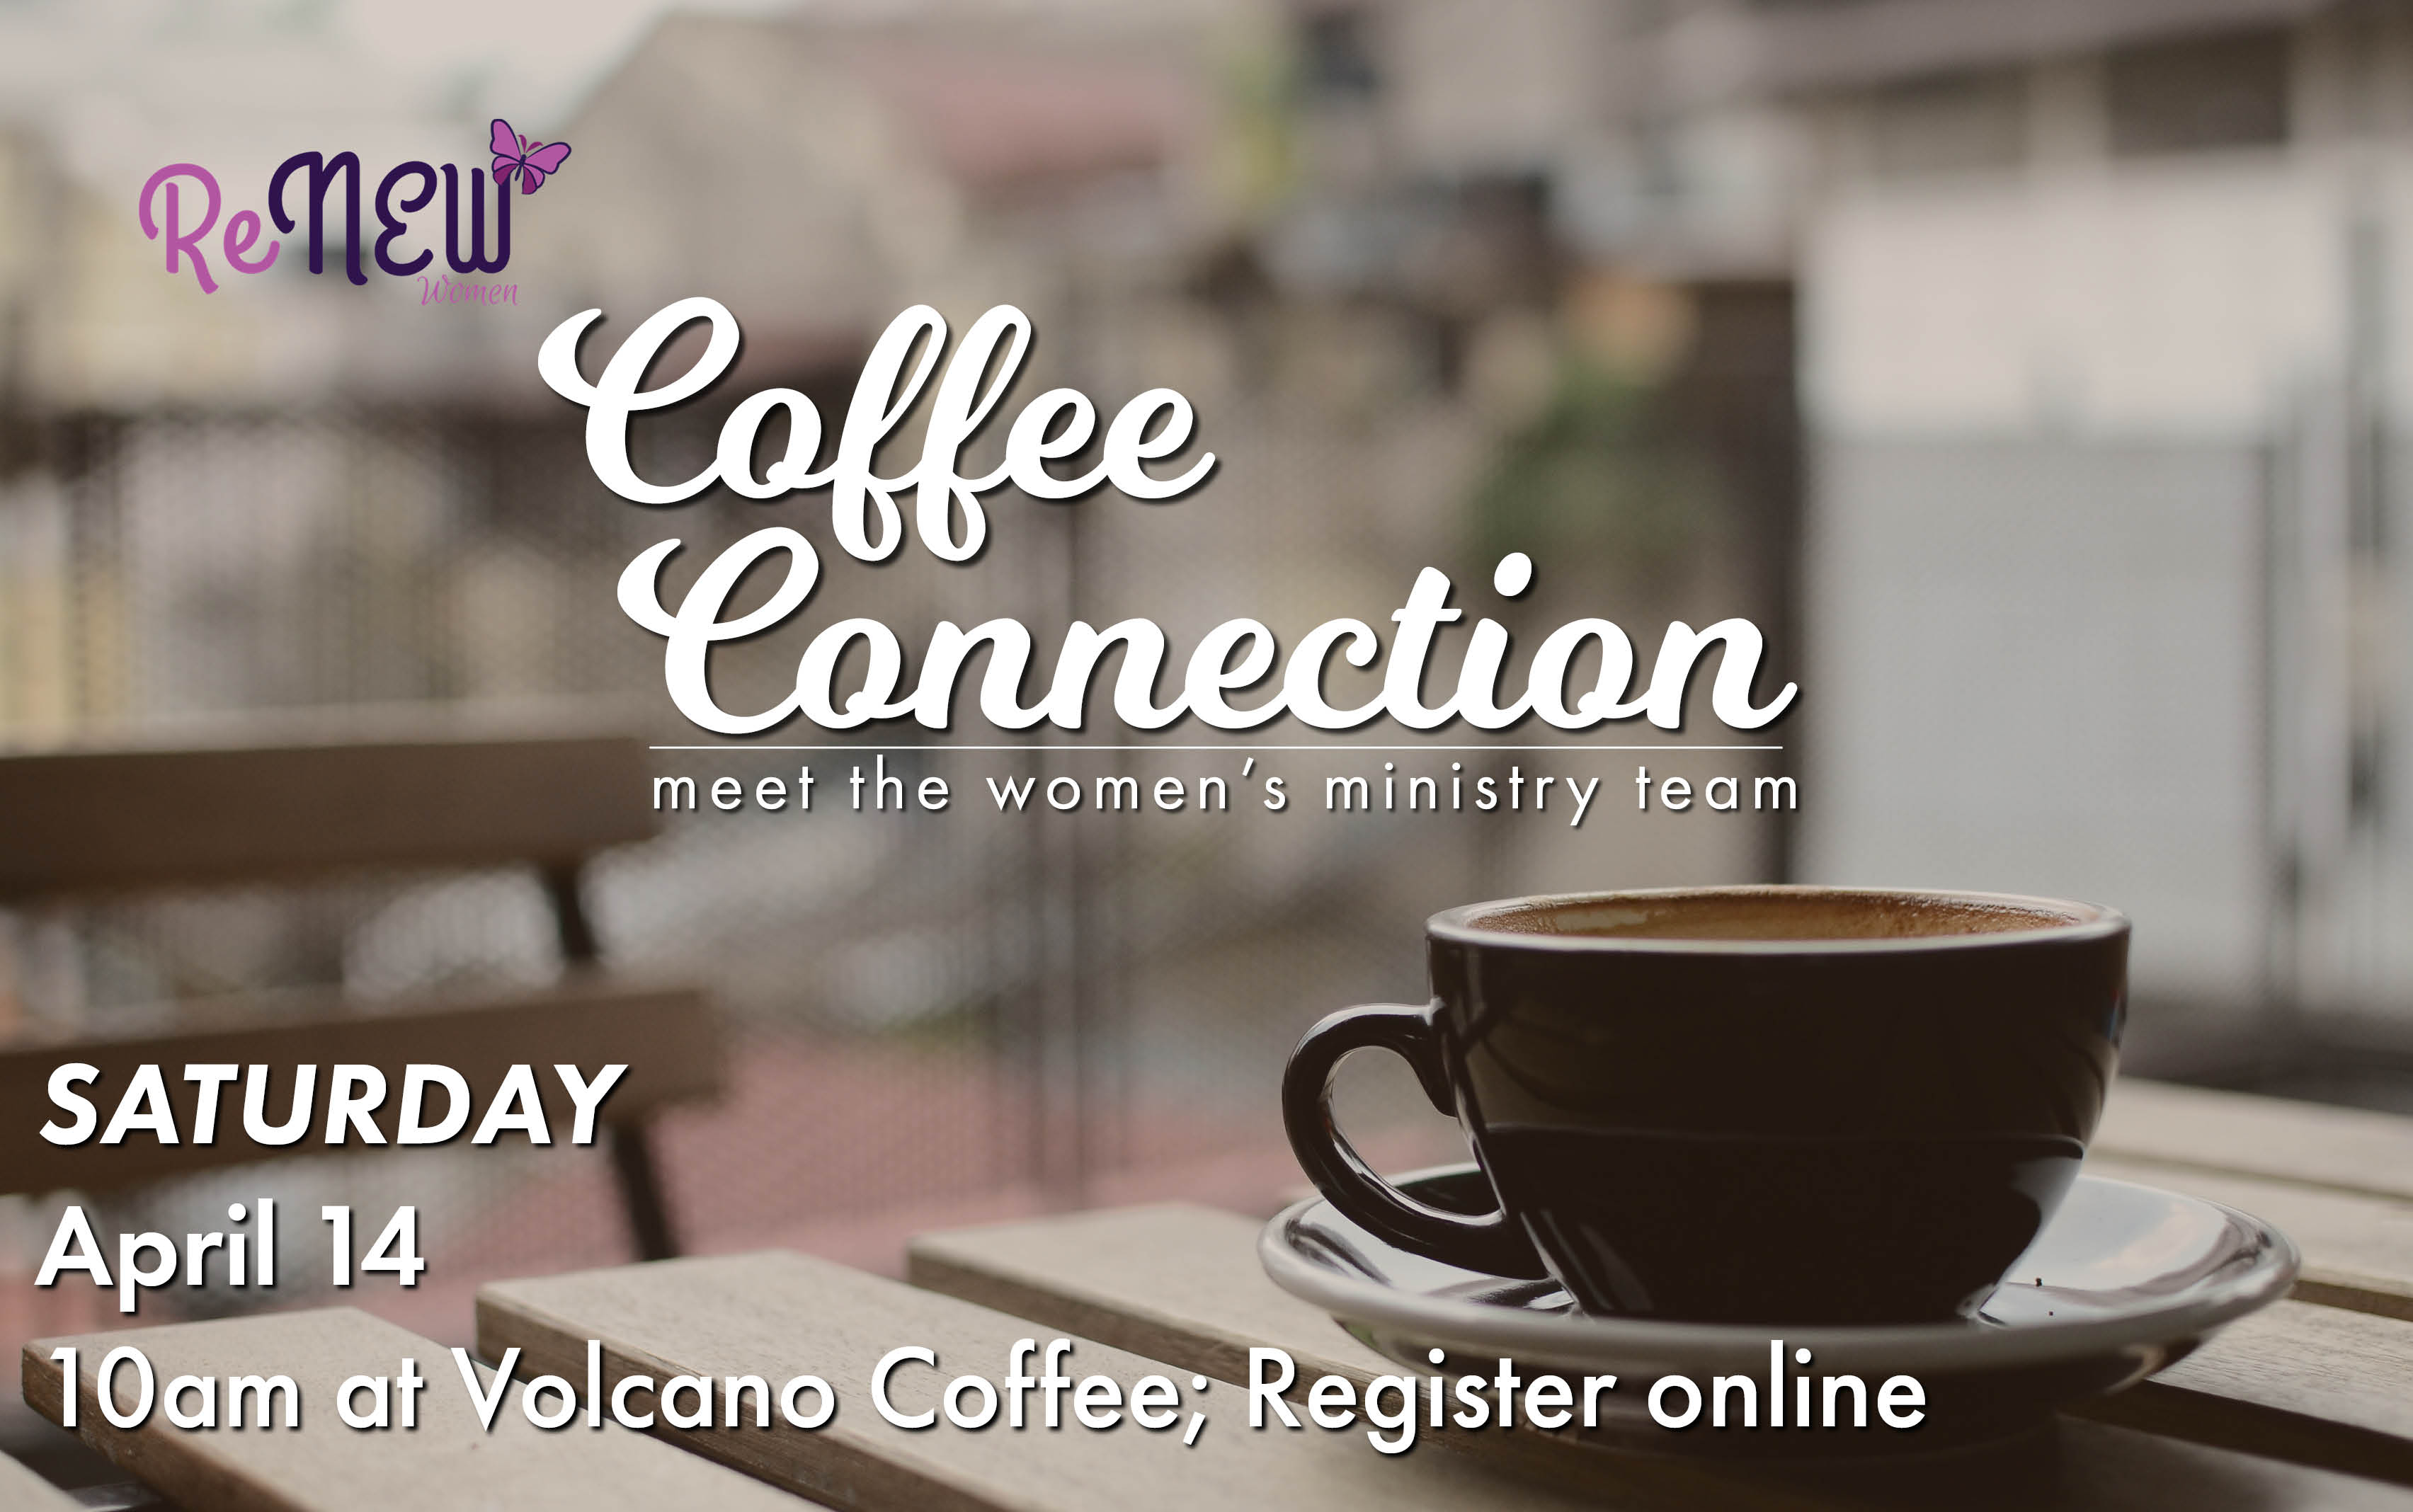 2018 02 coffee connection screen